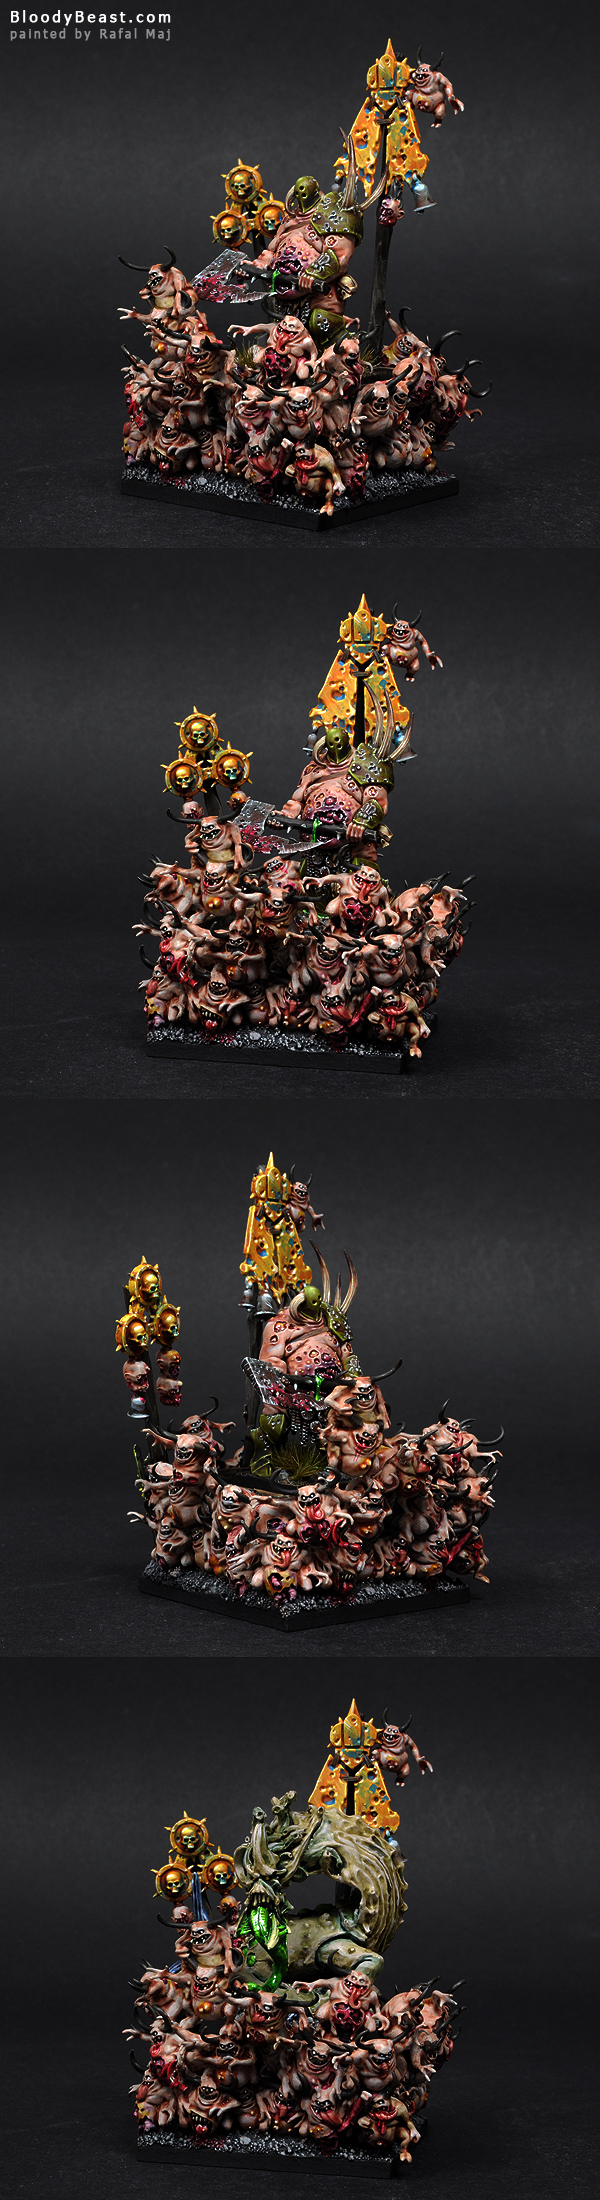 Lord on Palanquin of Nurgle painted by Rafal Maj (BloodyBeast.com)